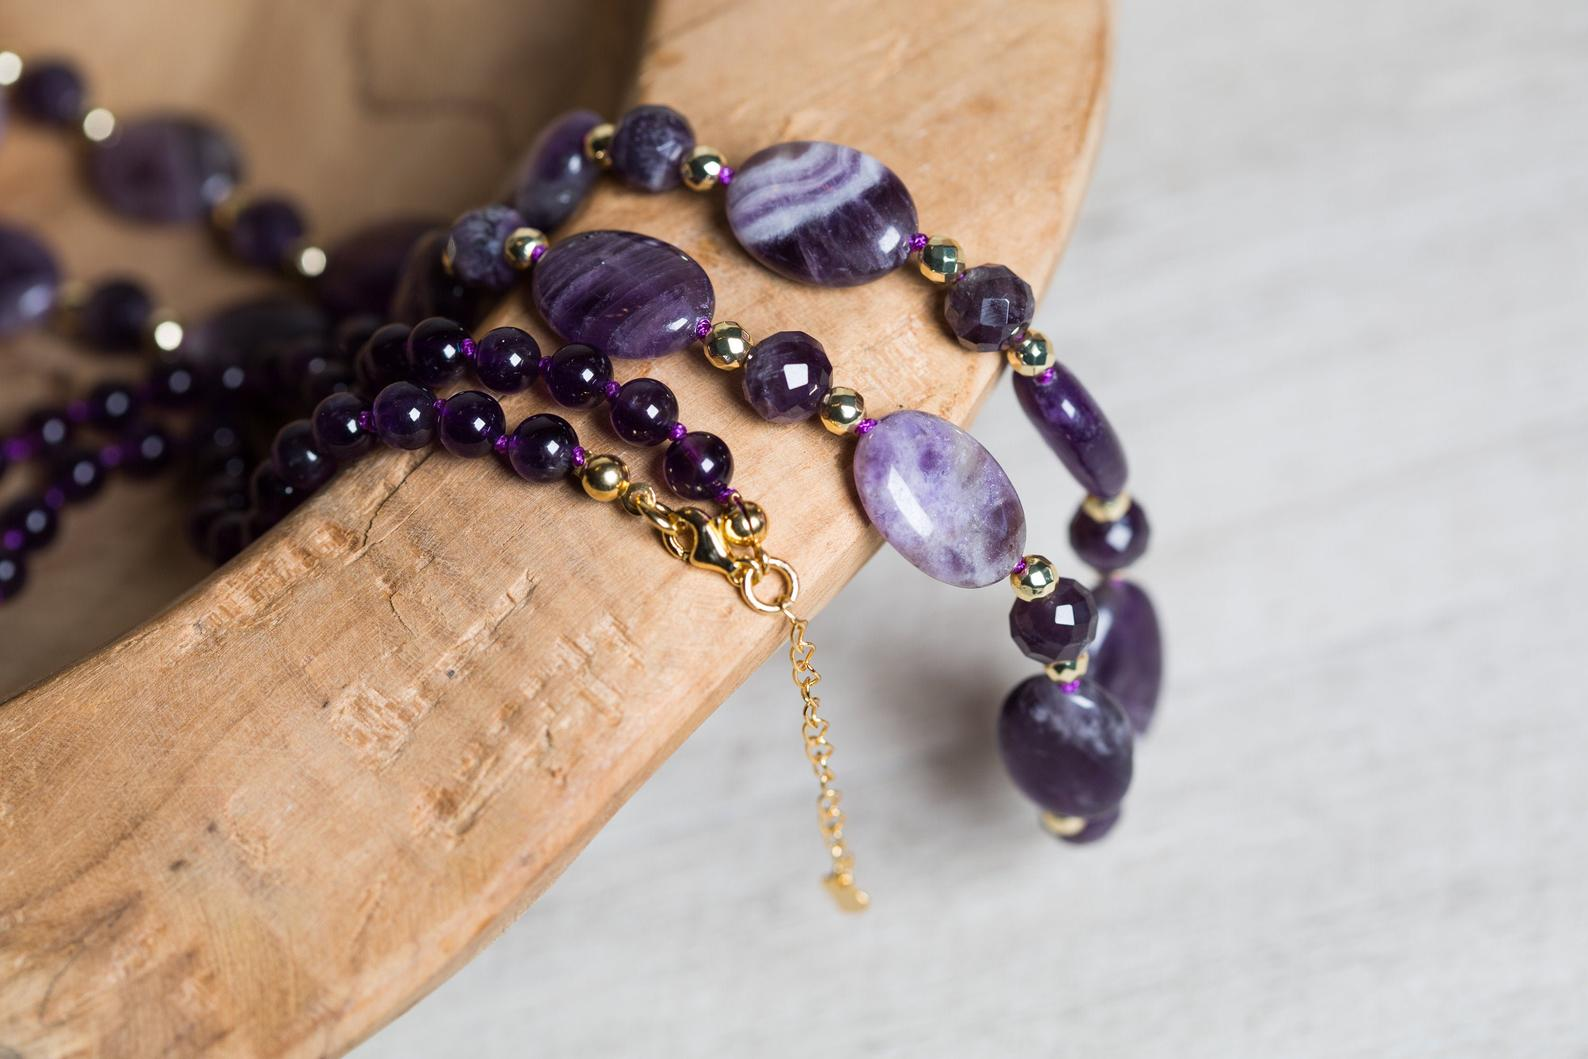 This beautiful necklace is flawlessly made with natural Amethyst oval, round and faceted beads. Among them, there are golden Hematite beads that highlight the deep shine of Amethyst. It's fully hand-knotted with a purple cord, assigning strength and durability while the design completes with a lobster claw clasp. It's worth mentioning that the clasp and the rest findings are made of 18ct gold plated, 925 sterling silver, adding luxury and elegance to this queenly design.